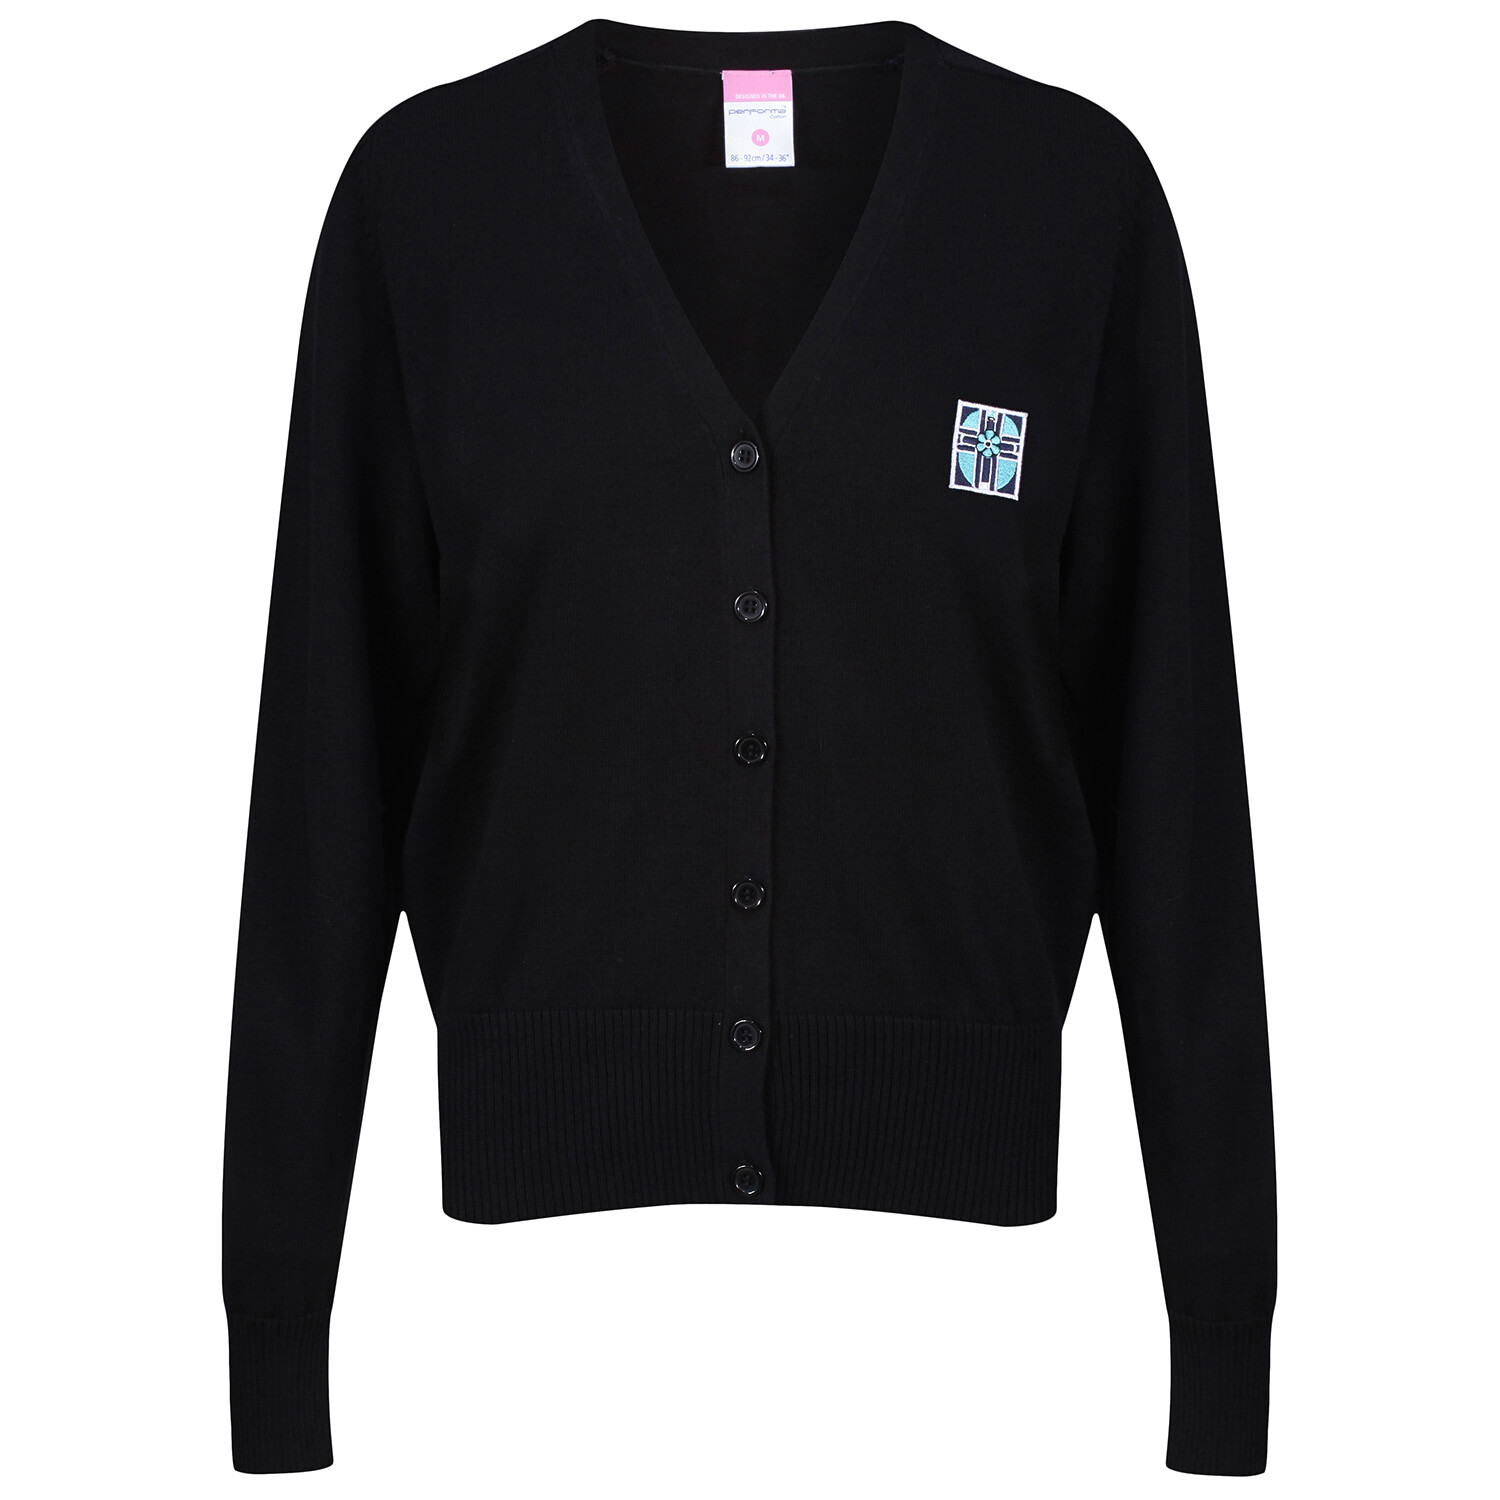 Notre Dame High Girls Knitted Cardigan